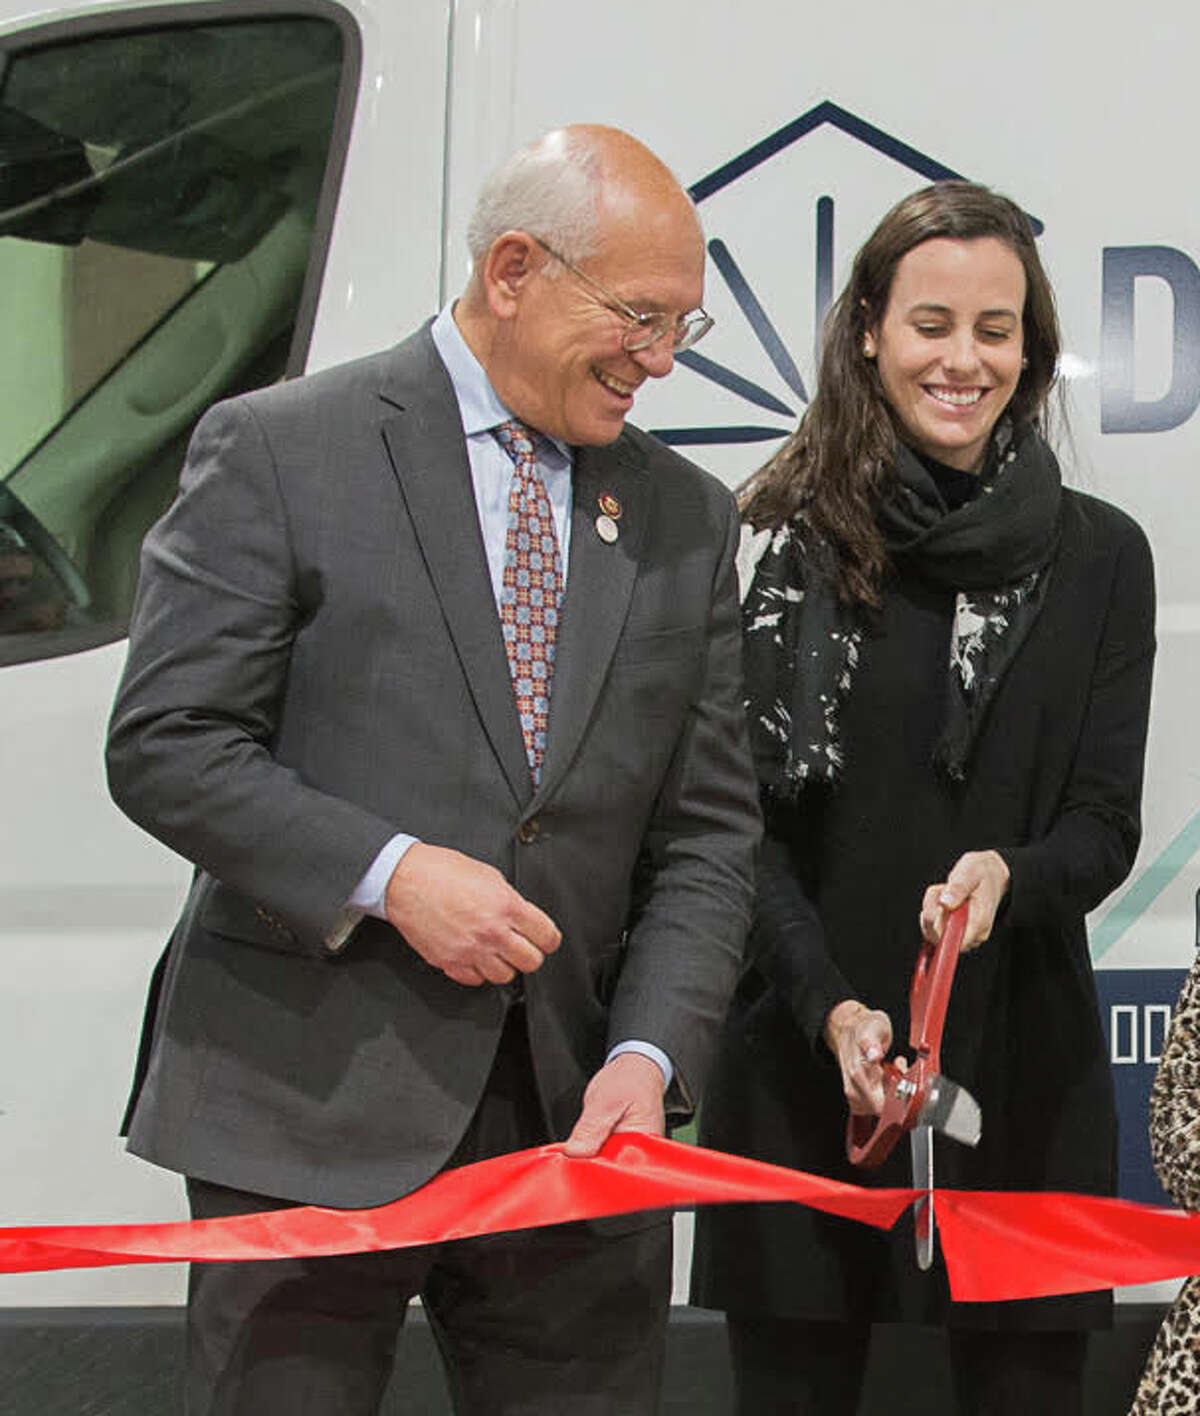 (L) U.S. Rep. Paul Tonko, D-Amsterdam, cuts the ribbon on an expanded operation center for Dandelion Energy in Latham, N.Y. with the company's president and co-founder Kathy Hannun (R) in November 2019. Tonko has chosen Hannun to be his guest at the State of the Union address in Washington, D.C. on Tuesday February 4, 2020.